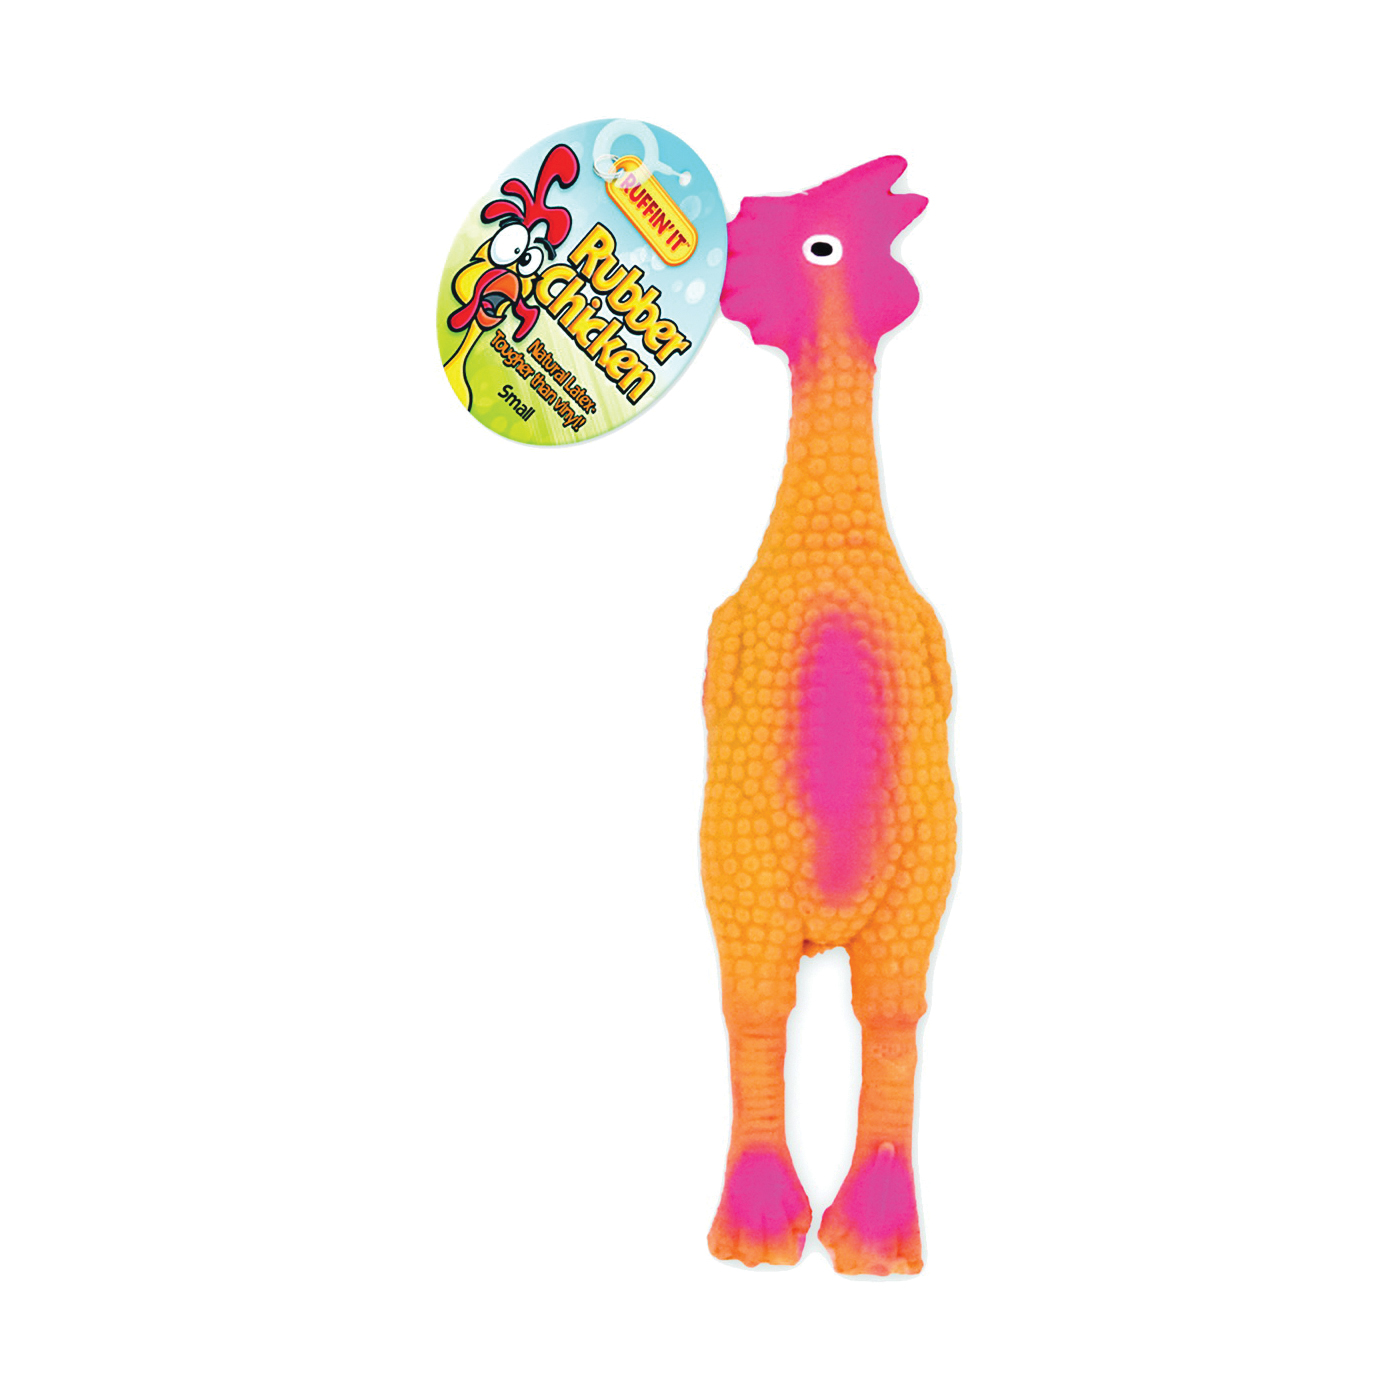 Picture of RUFFIN'IT 80528-2 Dog Toy, S, Chicken, Rubber